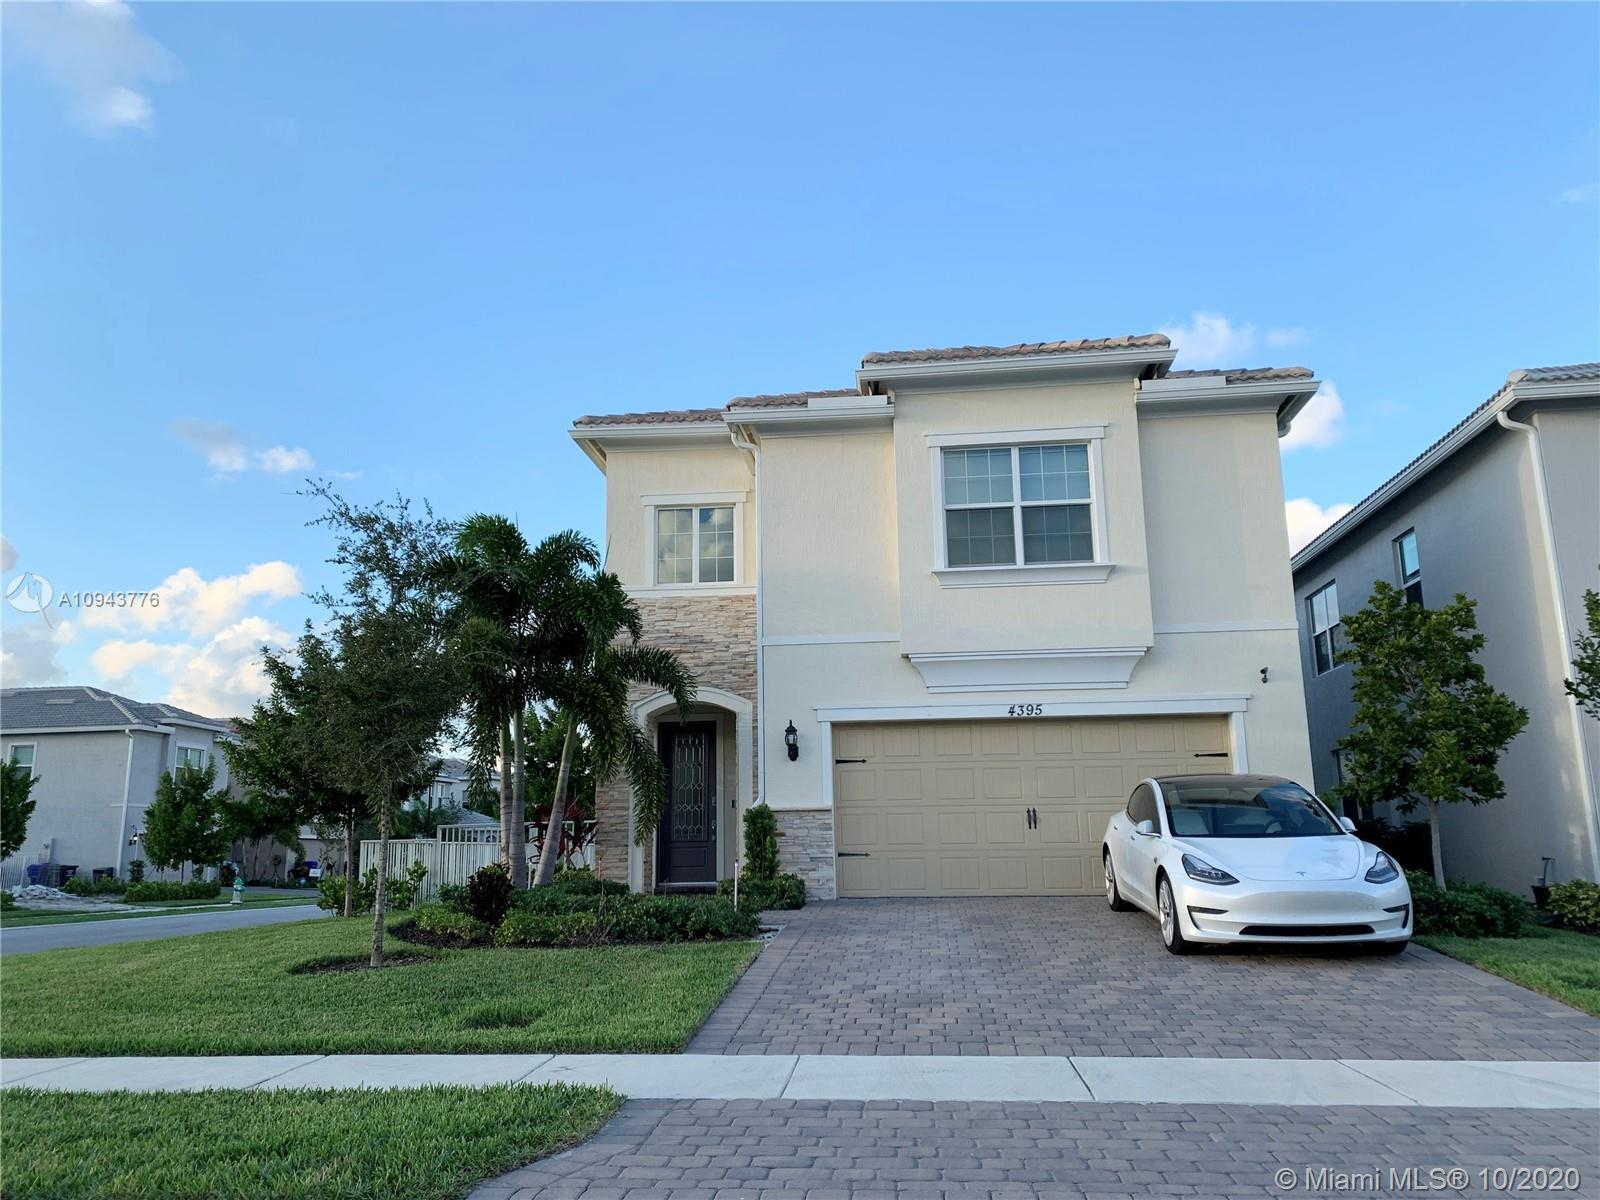 CORNER LOT WITH FENCE and hedges surrounding. Beautiful modern home in gated community Parkview at H